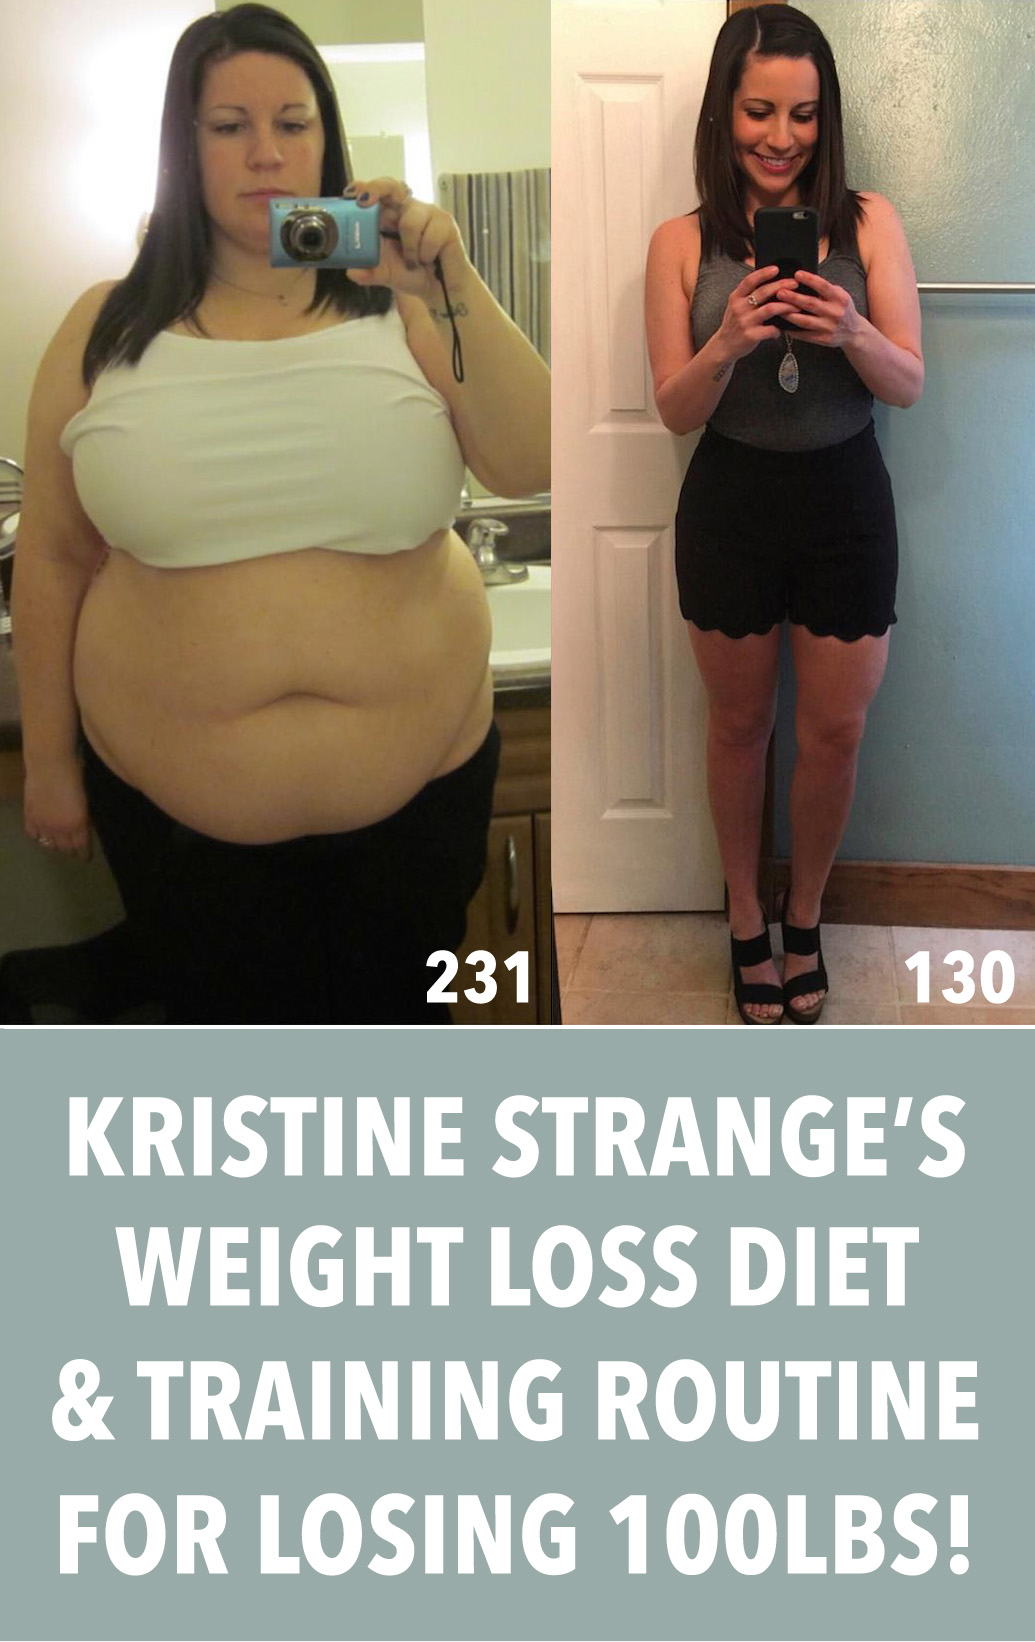 kristine-strange-weight-loss-transformation